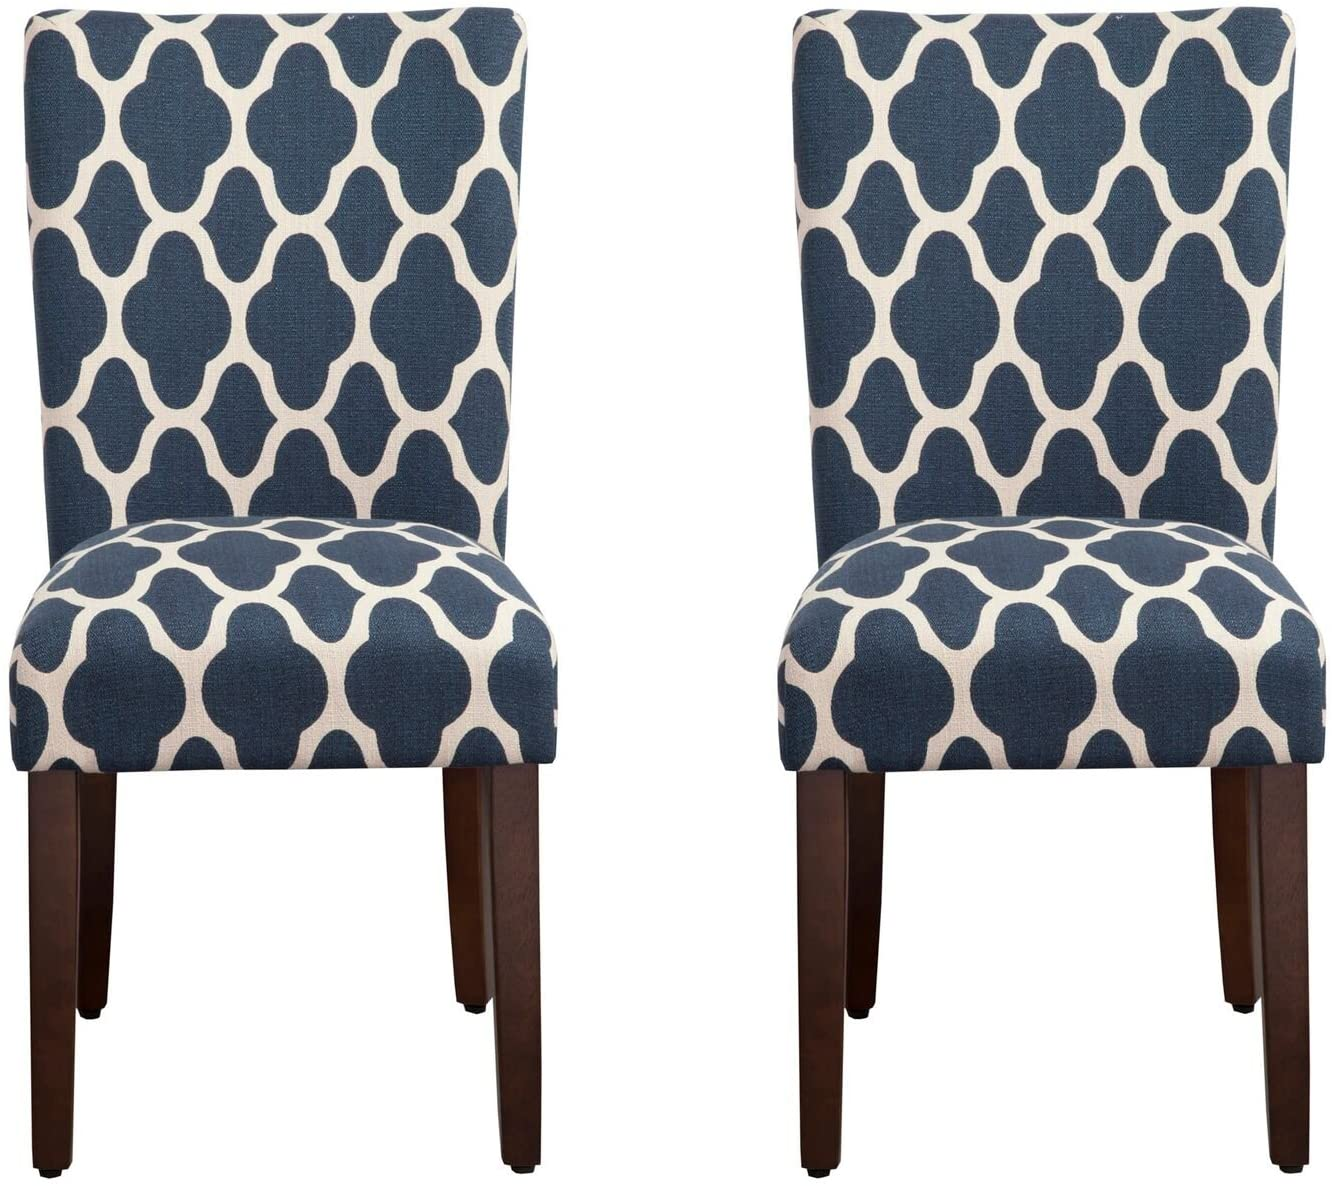 HomePop Parsons Classic Upholstered Accent Dining Chair, Set of 2, Navy and Cream Geometric - - Chairs